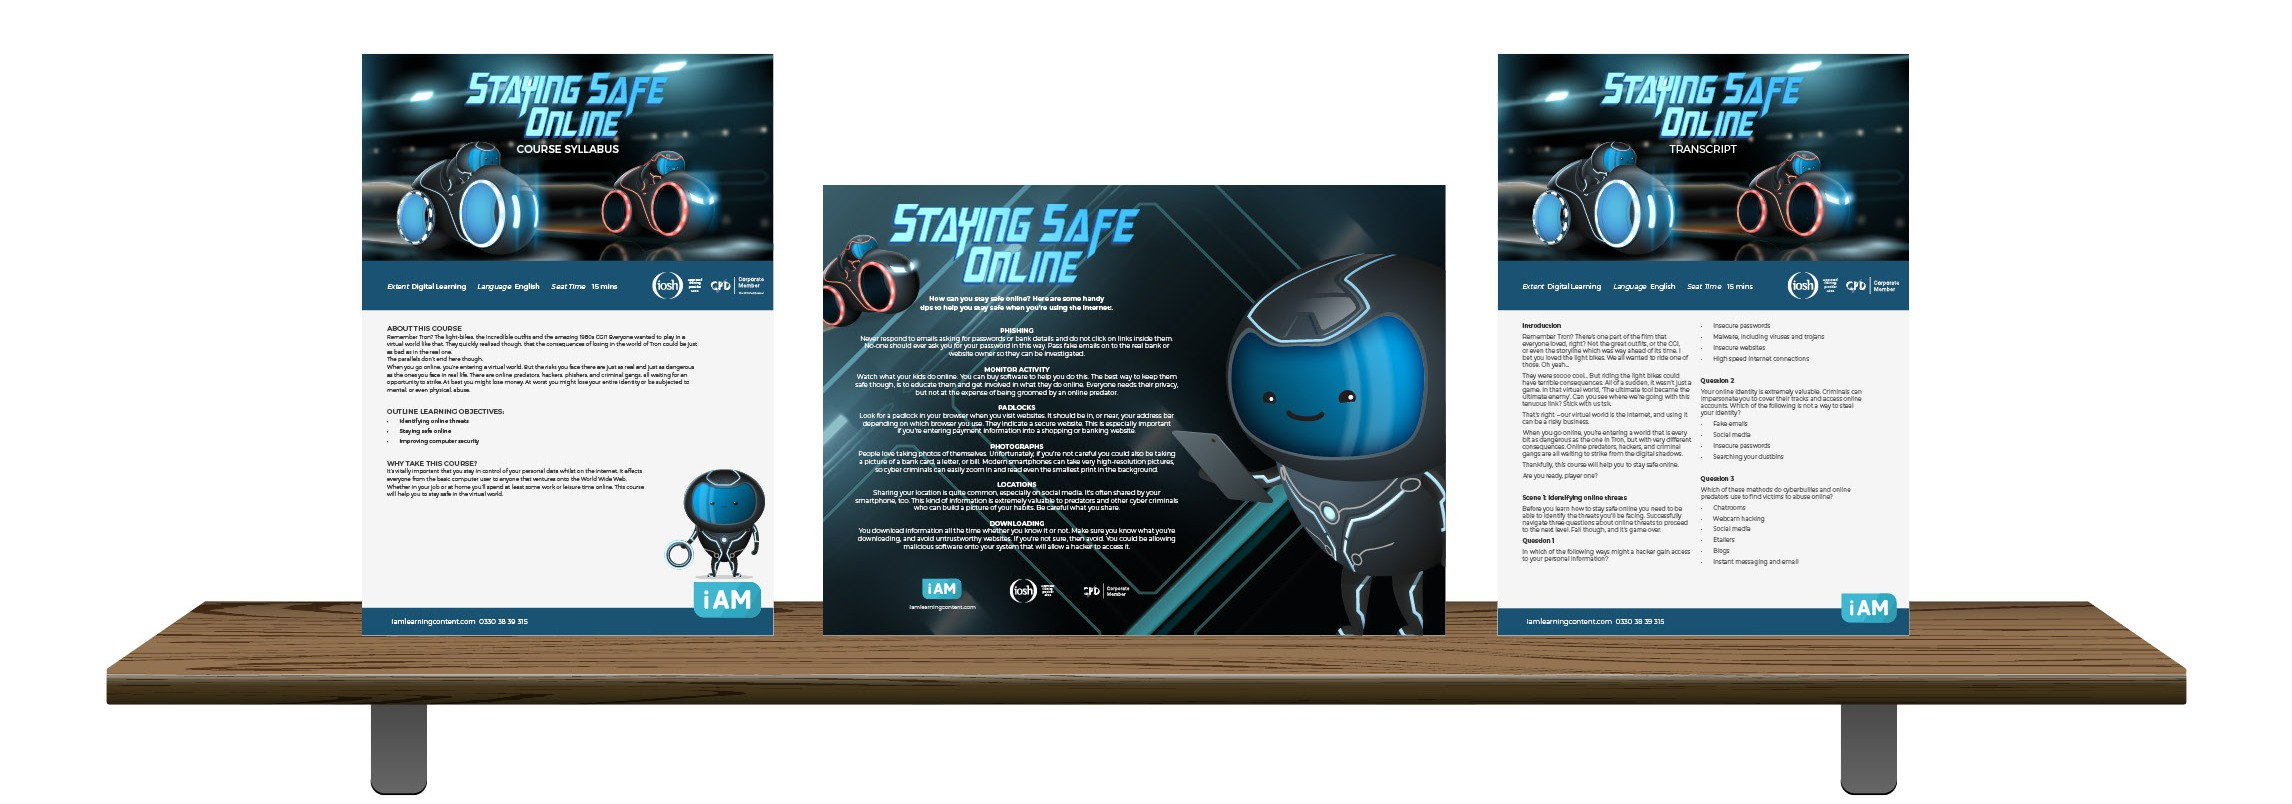 iAM 00038 - Staying Safe Online - Landing Page8